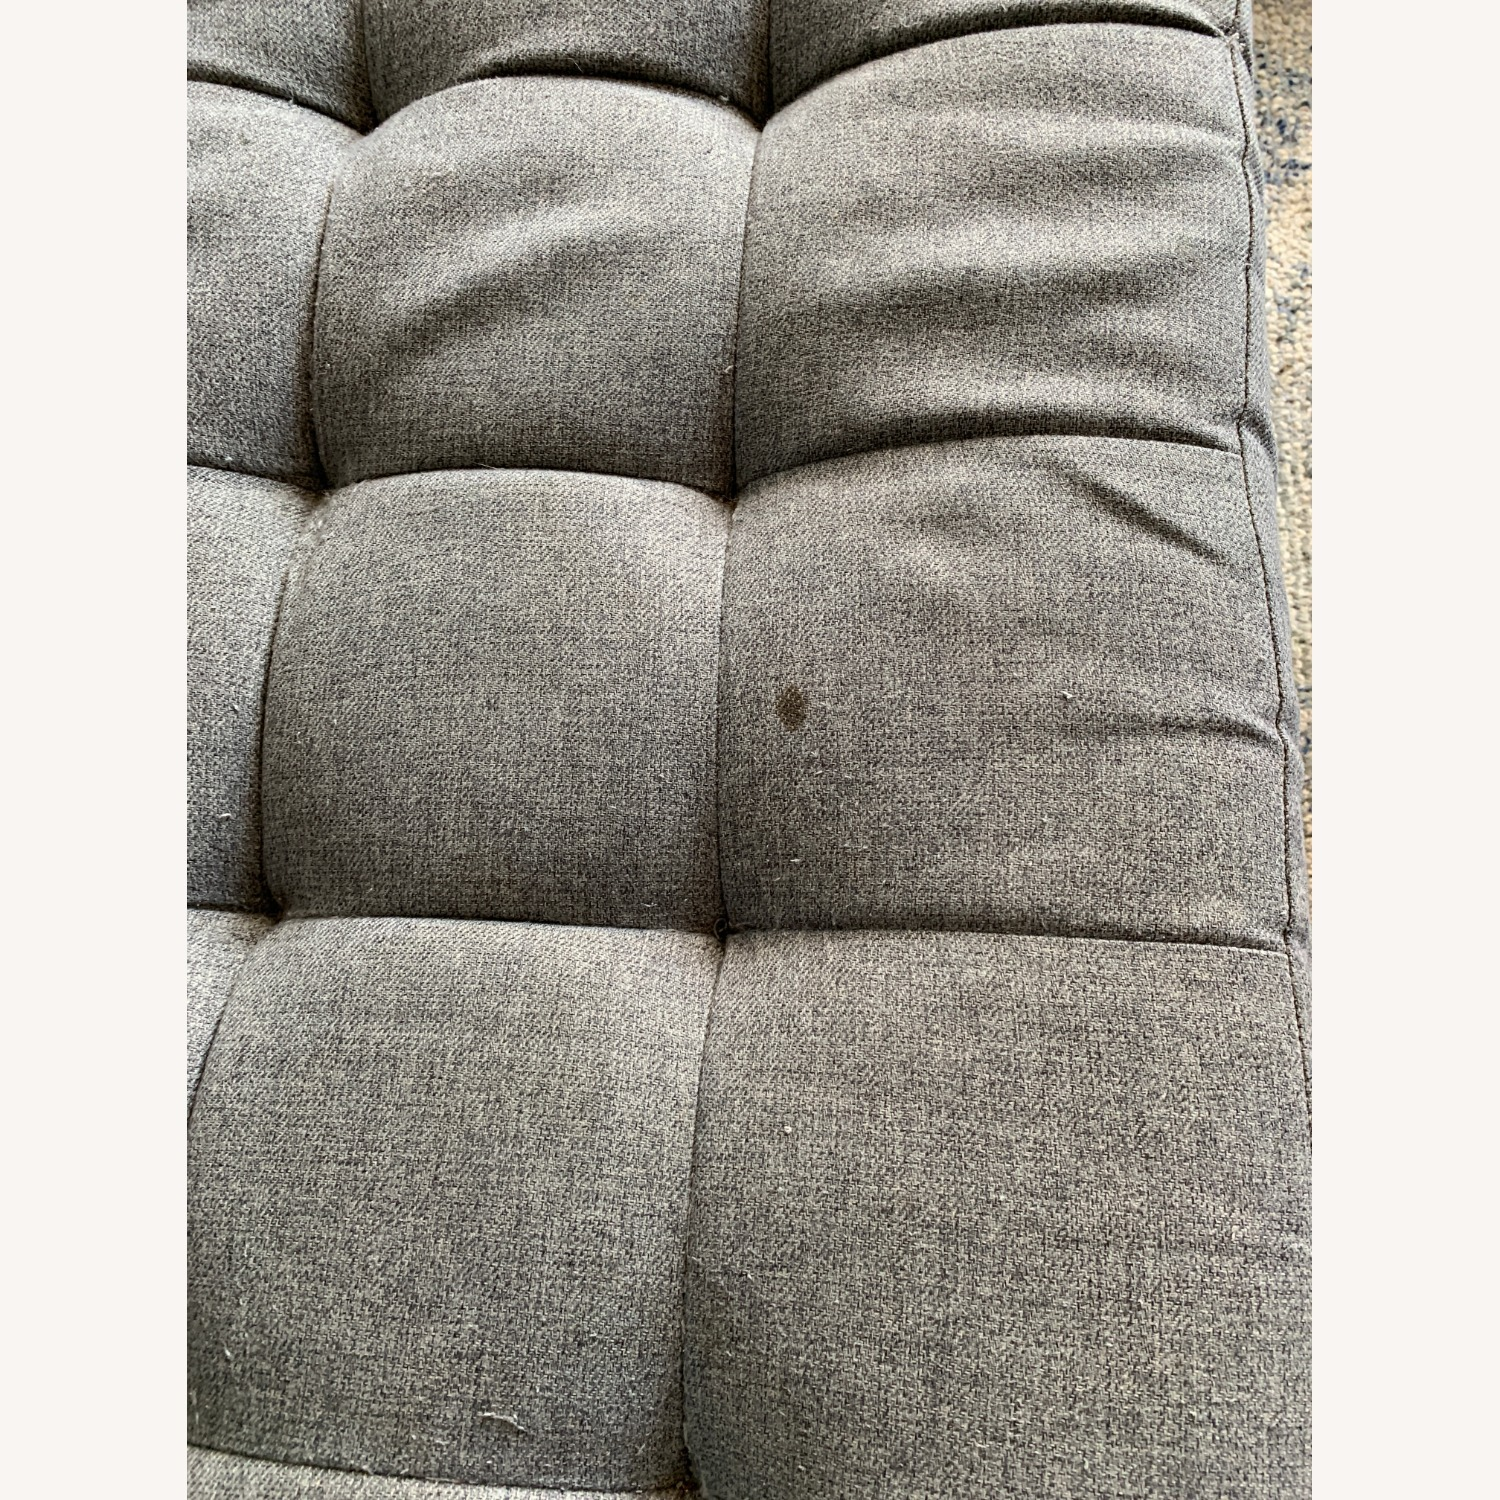 CB2 Tufted Grey Chaise Lounge Sofa - image-3